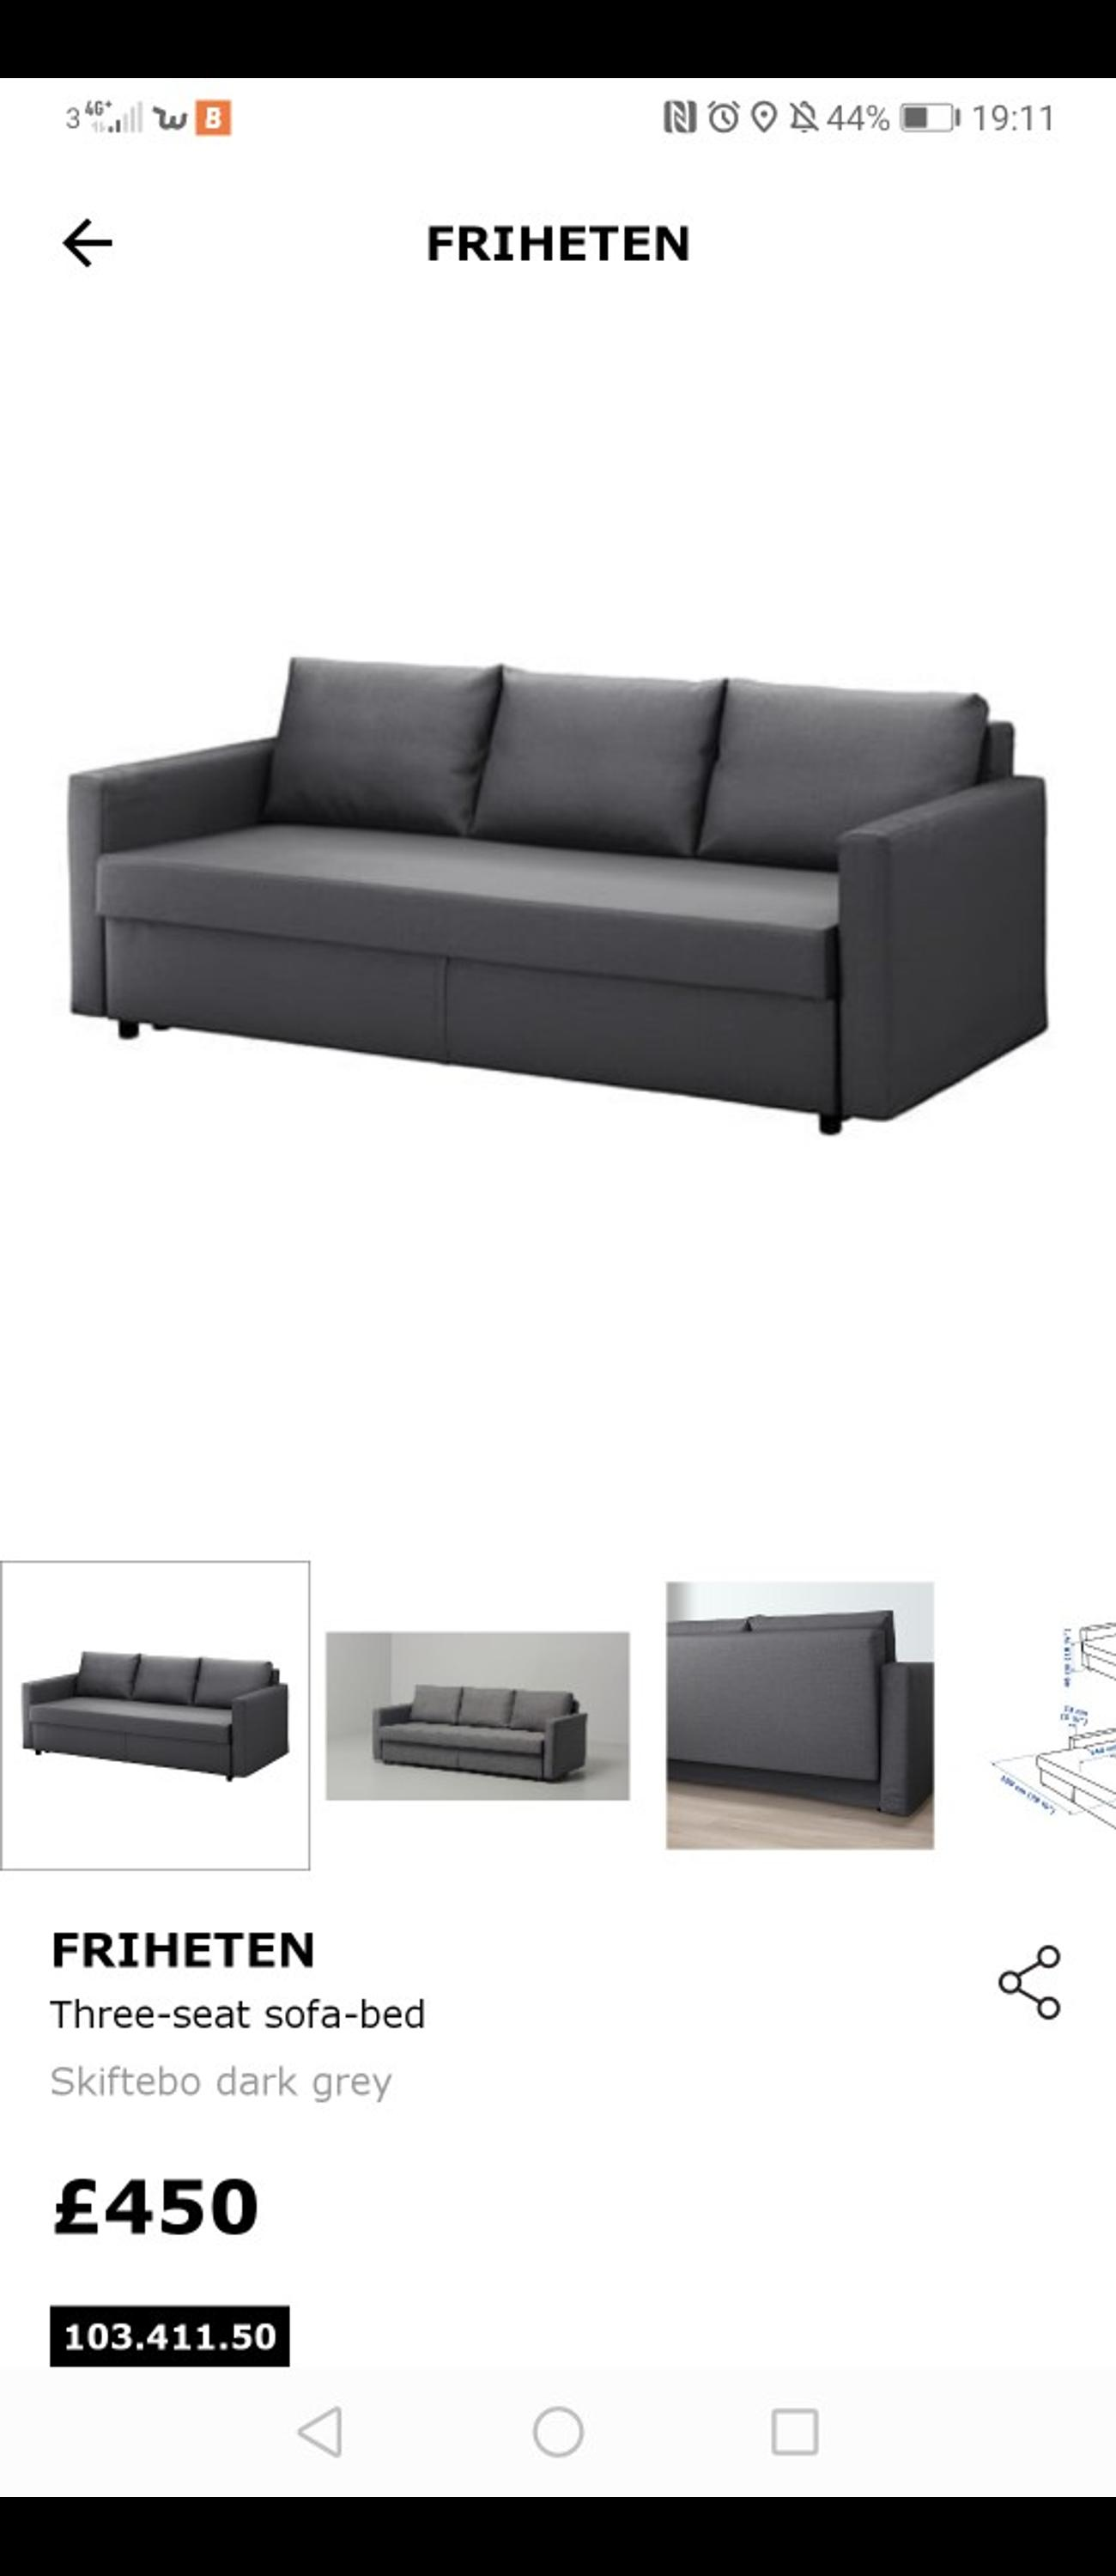 Ich designer when you're hunting for affordable furniture that works in ever. FRIHETEN Ikea grey 2-seat sofa bed in E9 London for £200 ...